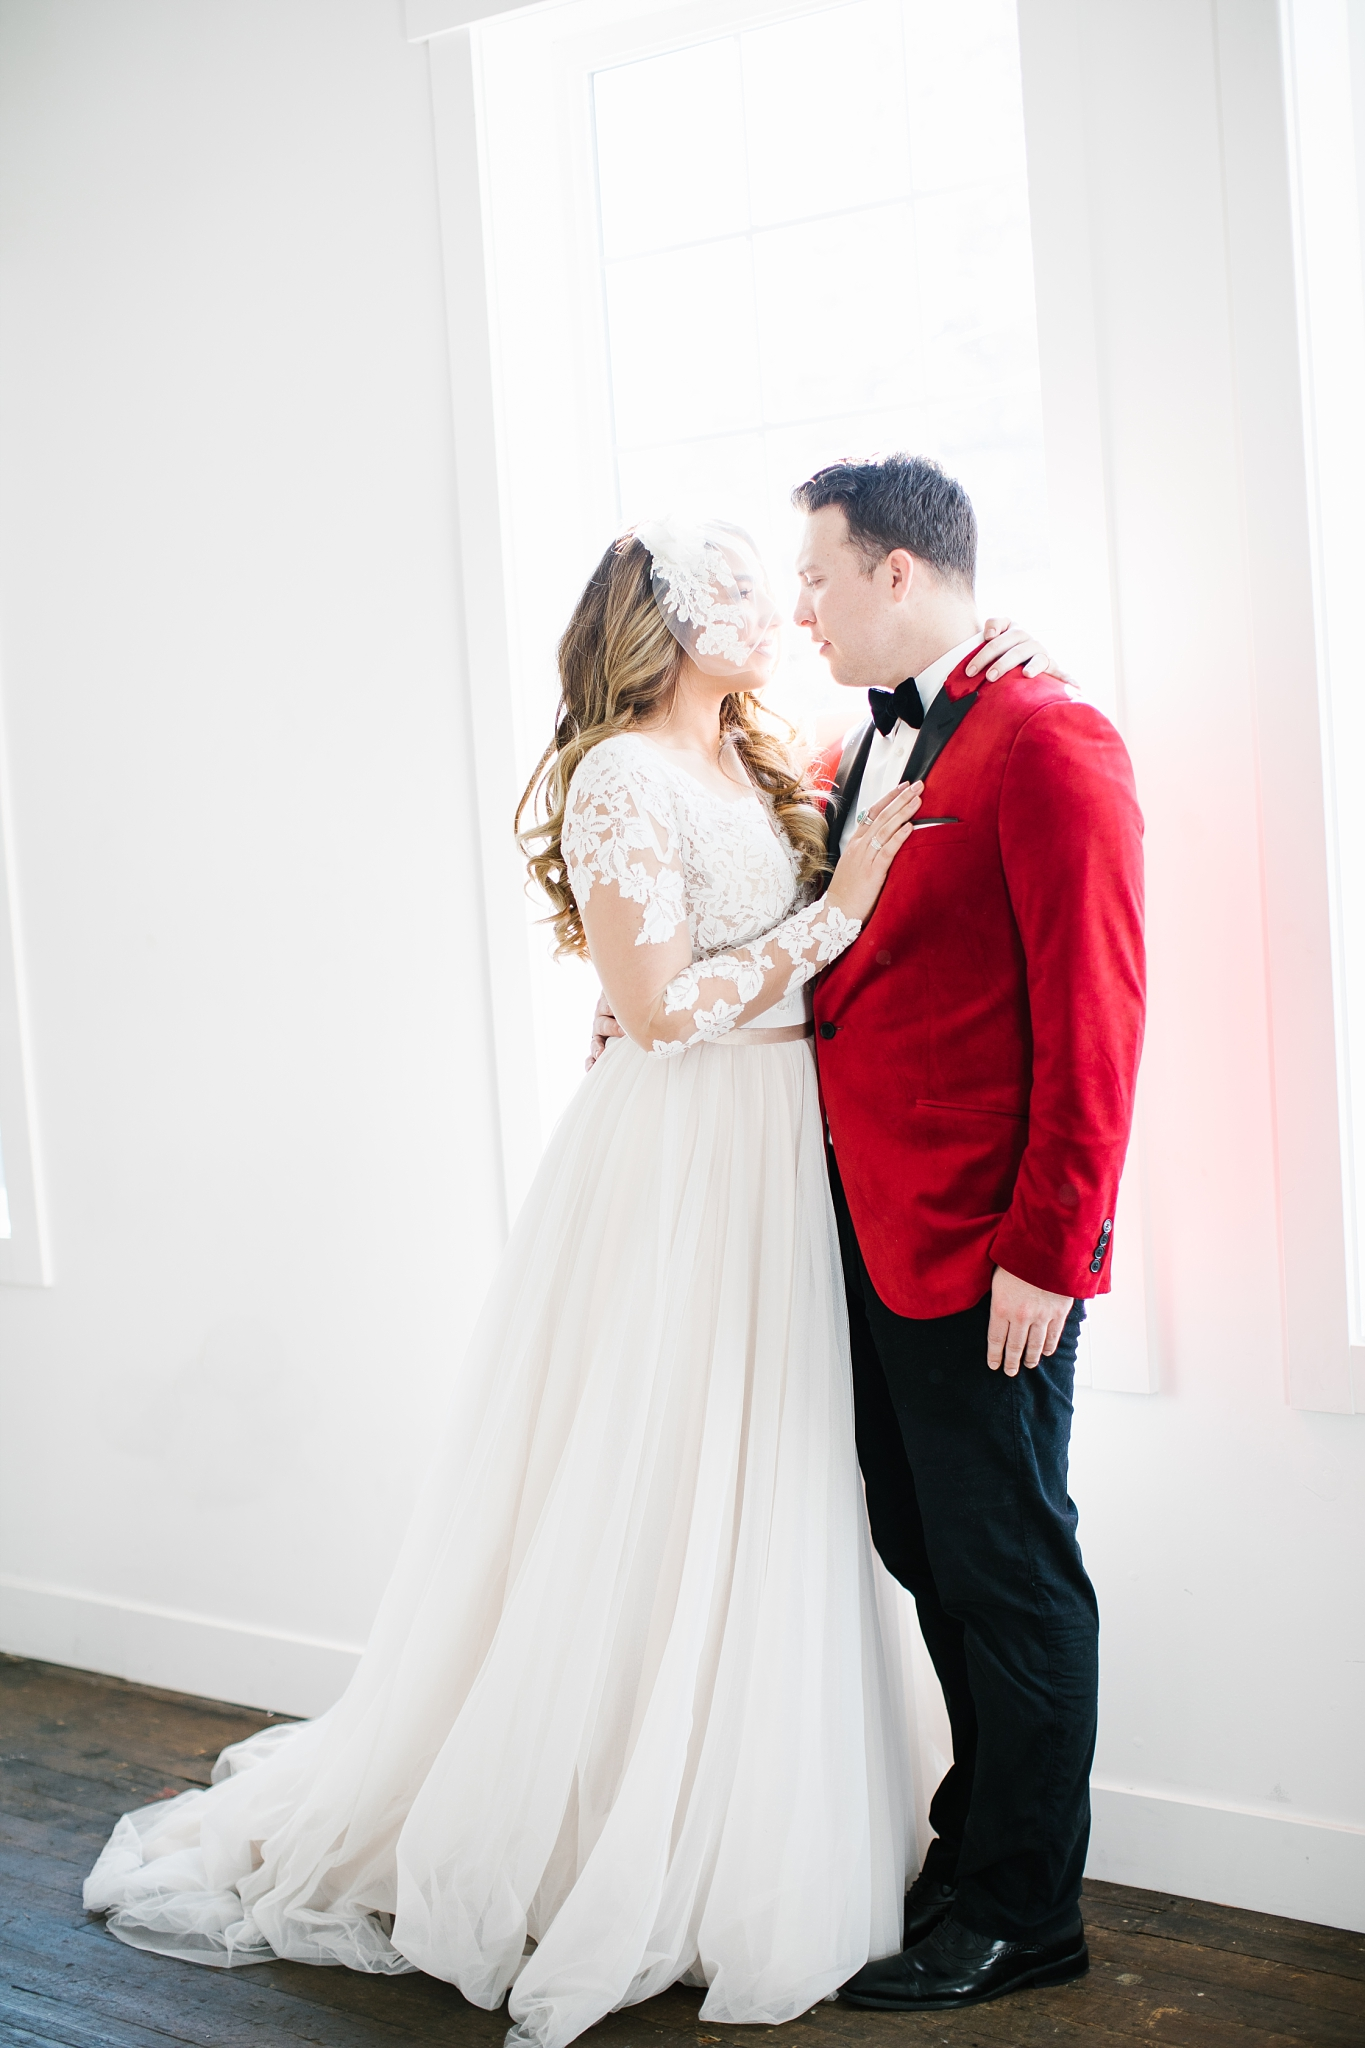 748A1052-Edit-40_Lizzie-B-Imagery-Utah-Wedding-Photographer-Park-City-Wedding-Photographer-The-Loft-Studio-Lehi-Utah.jpg